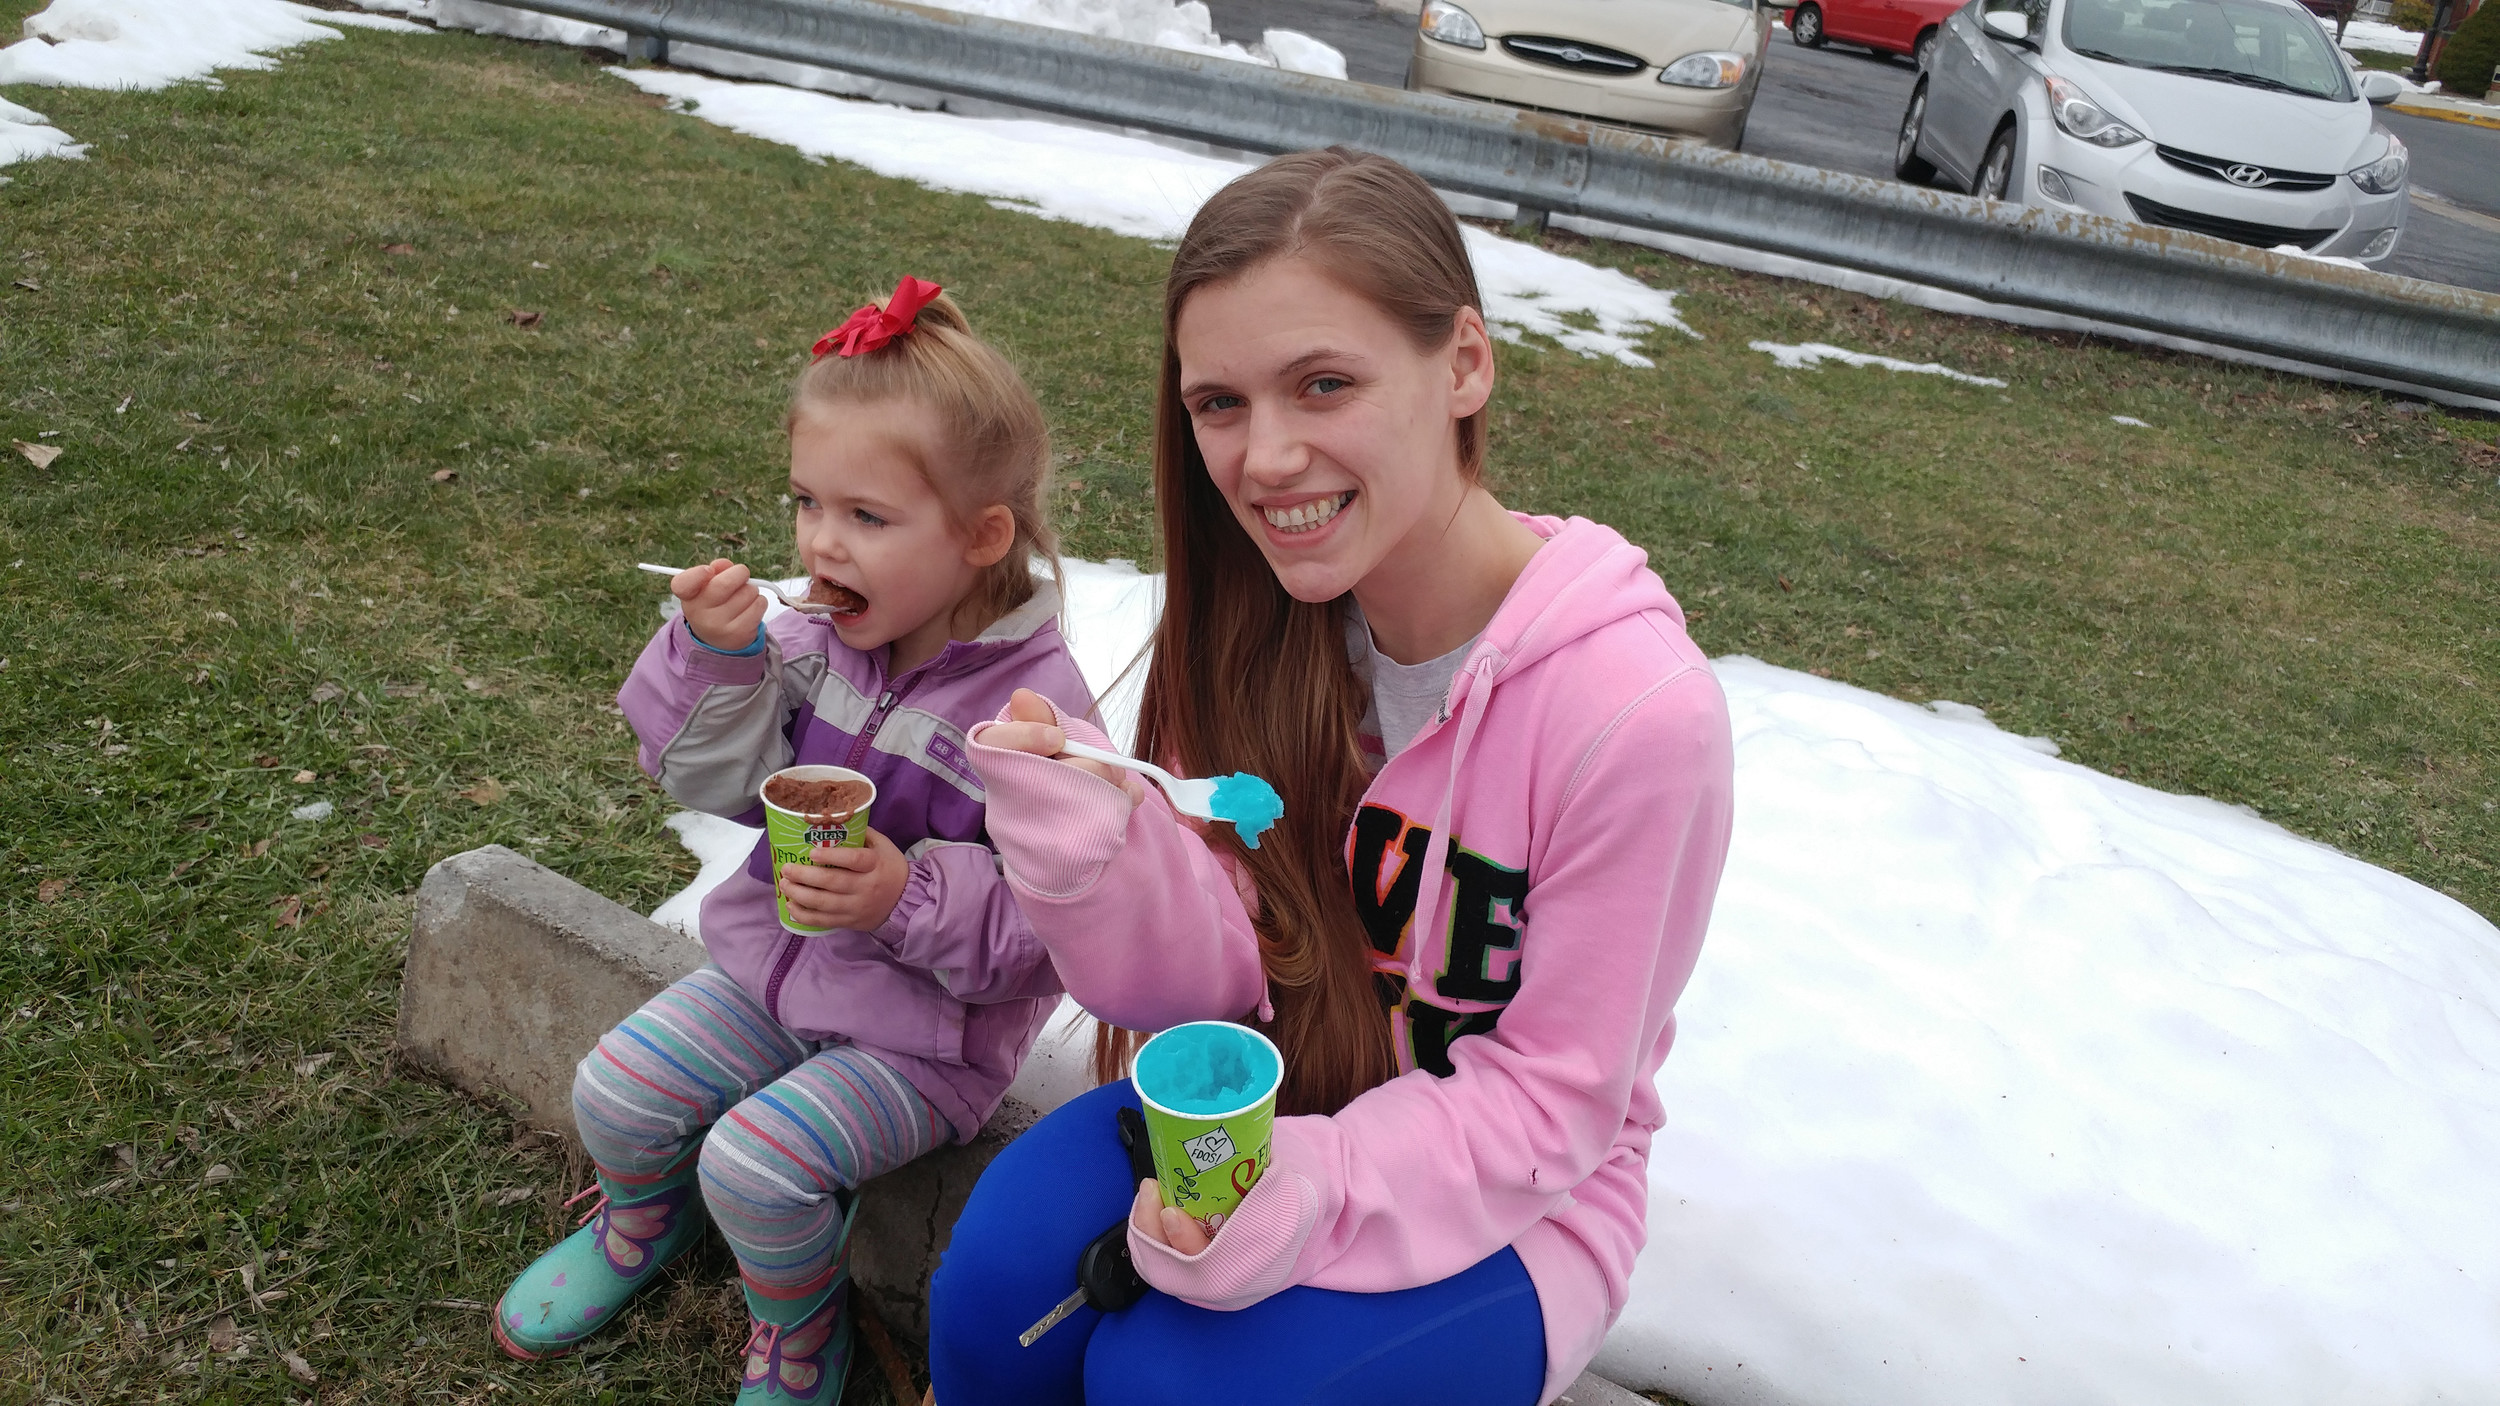 Autumn Kiehl and her daughter Kaylee took advantage of Rita's first day of spring giveaway Monday afternoon.